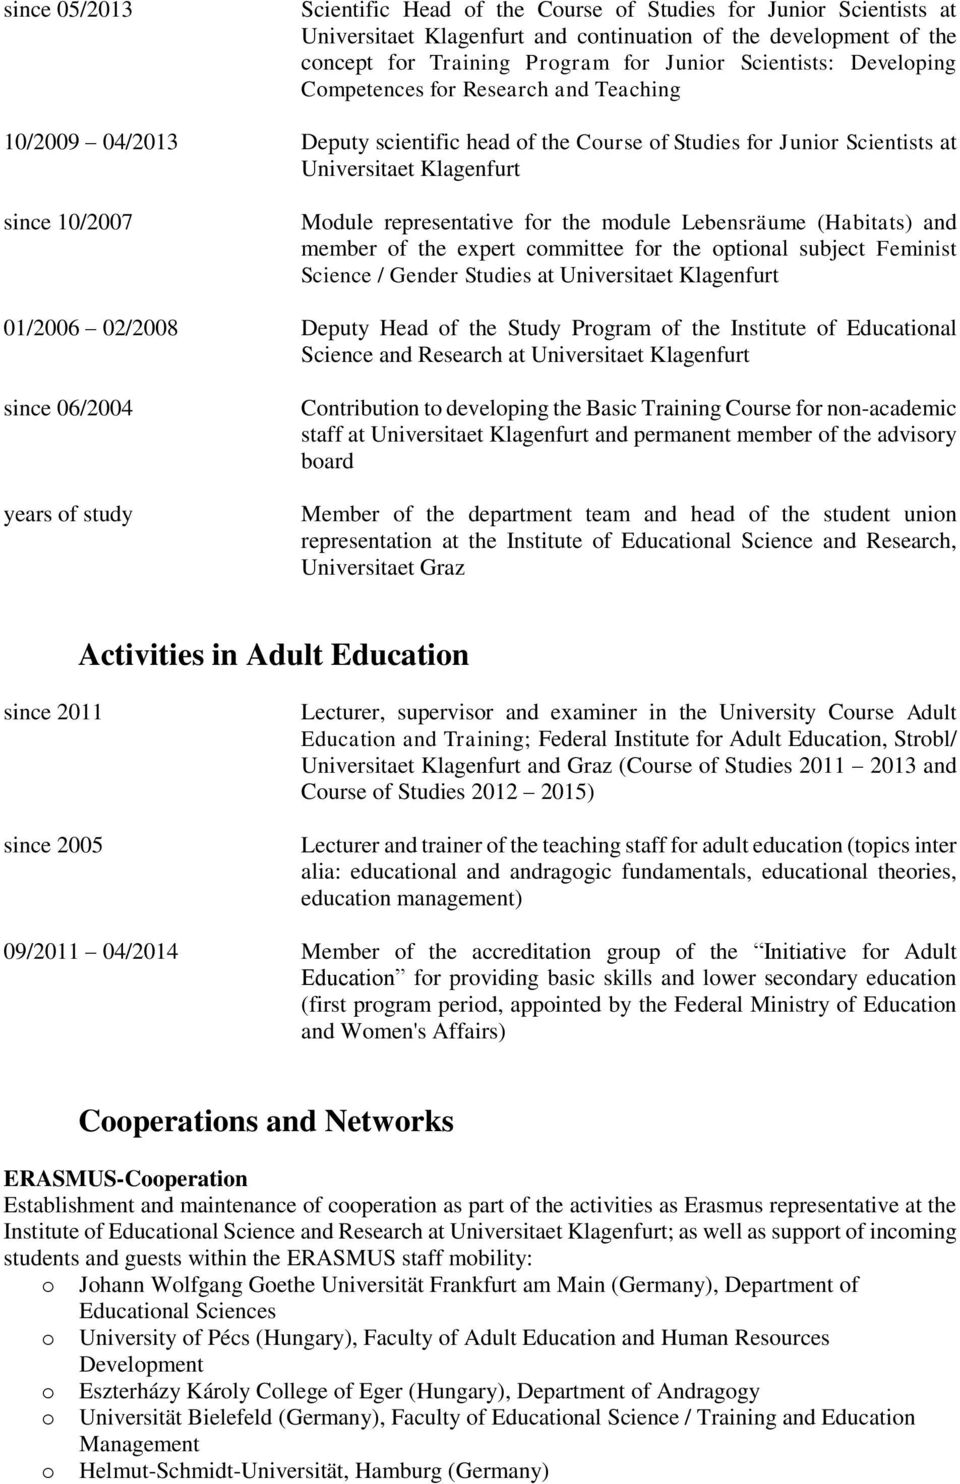 of the expert committee for the optional subject Feminist Science / Gender Studies at 01/2006 02/2008 Deputy Head of the Study Program of the Institute of Educational Science and Research at since